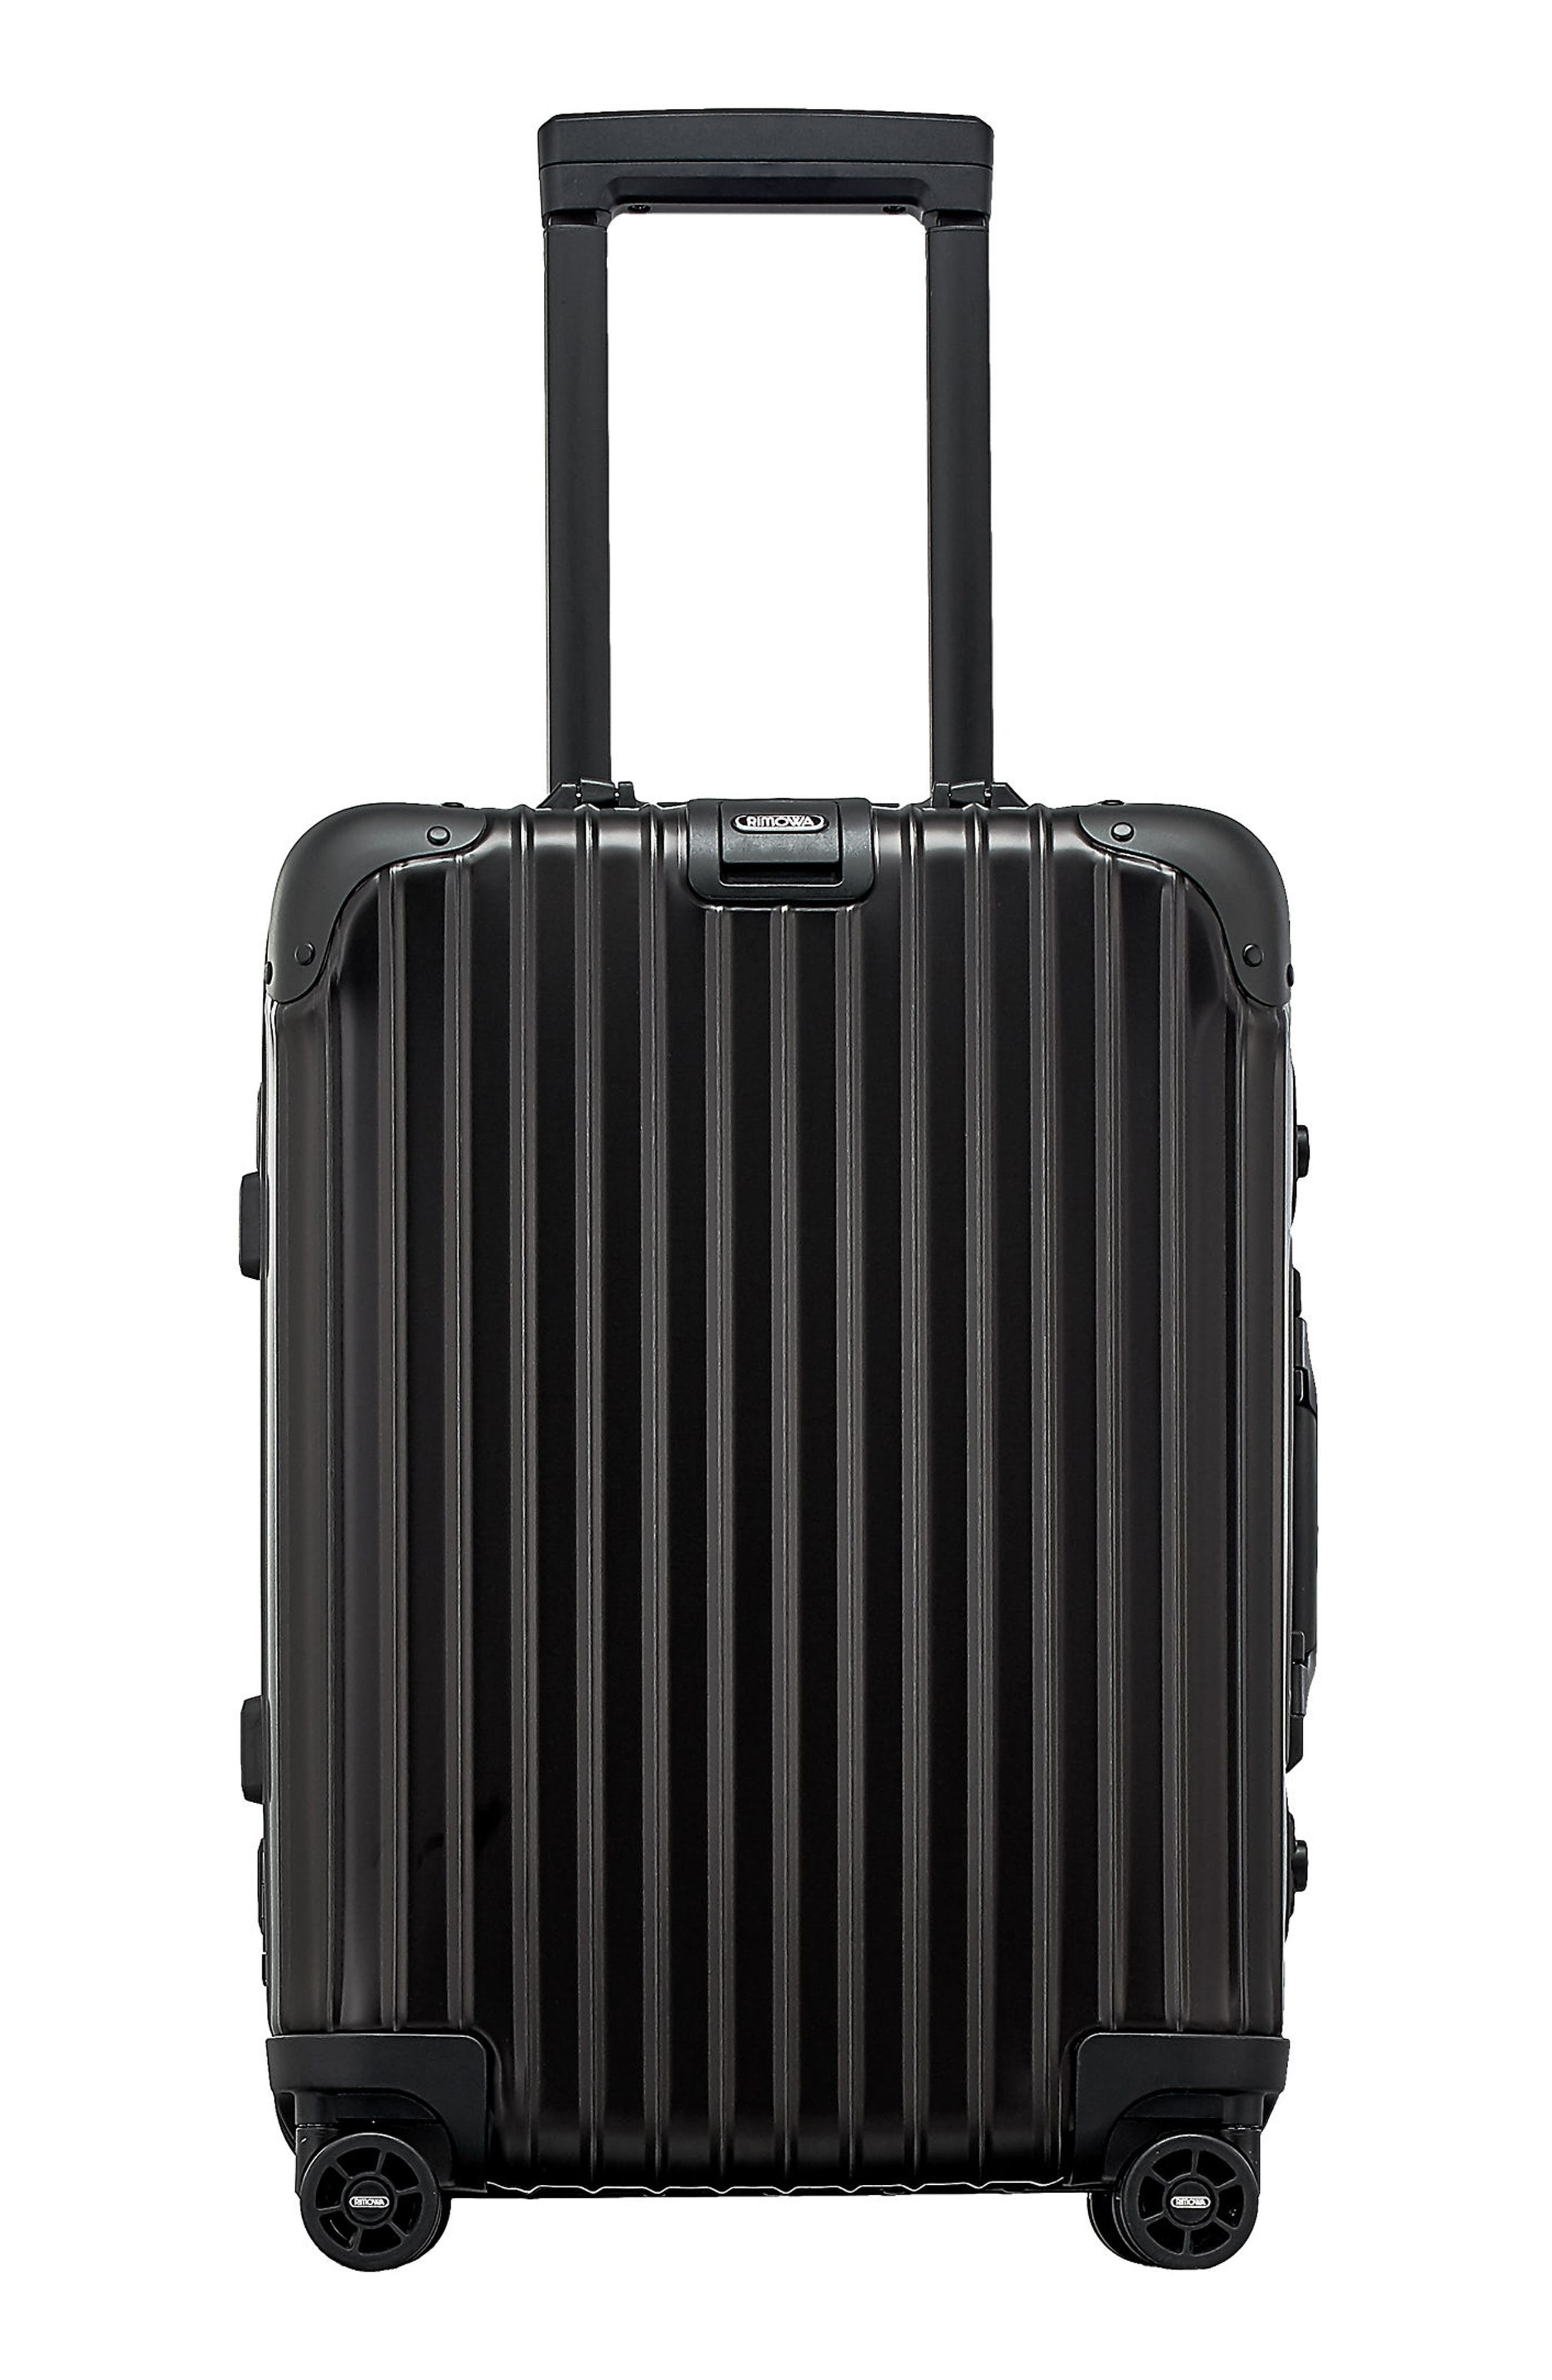 RIMOWA Topas Stealth 22-Inch Cabin Multiwheel<sup>®</sup> Aluminum Carry-On